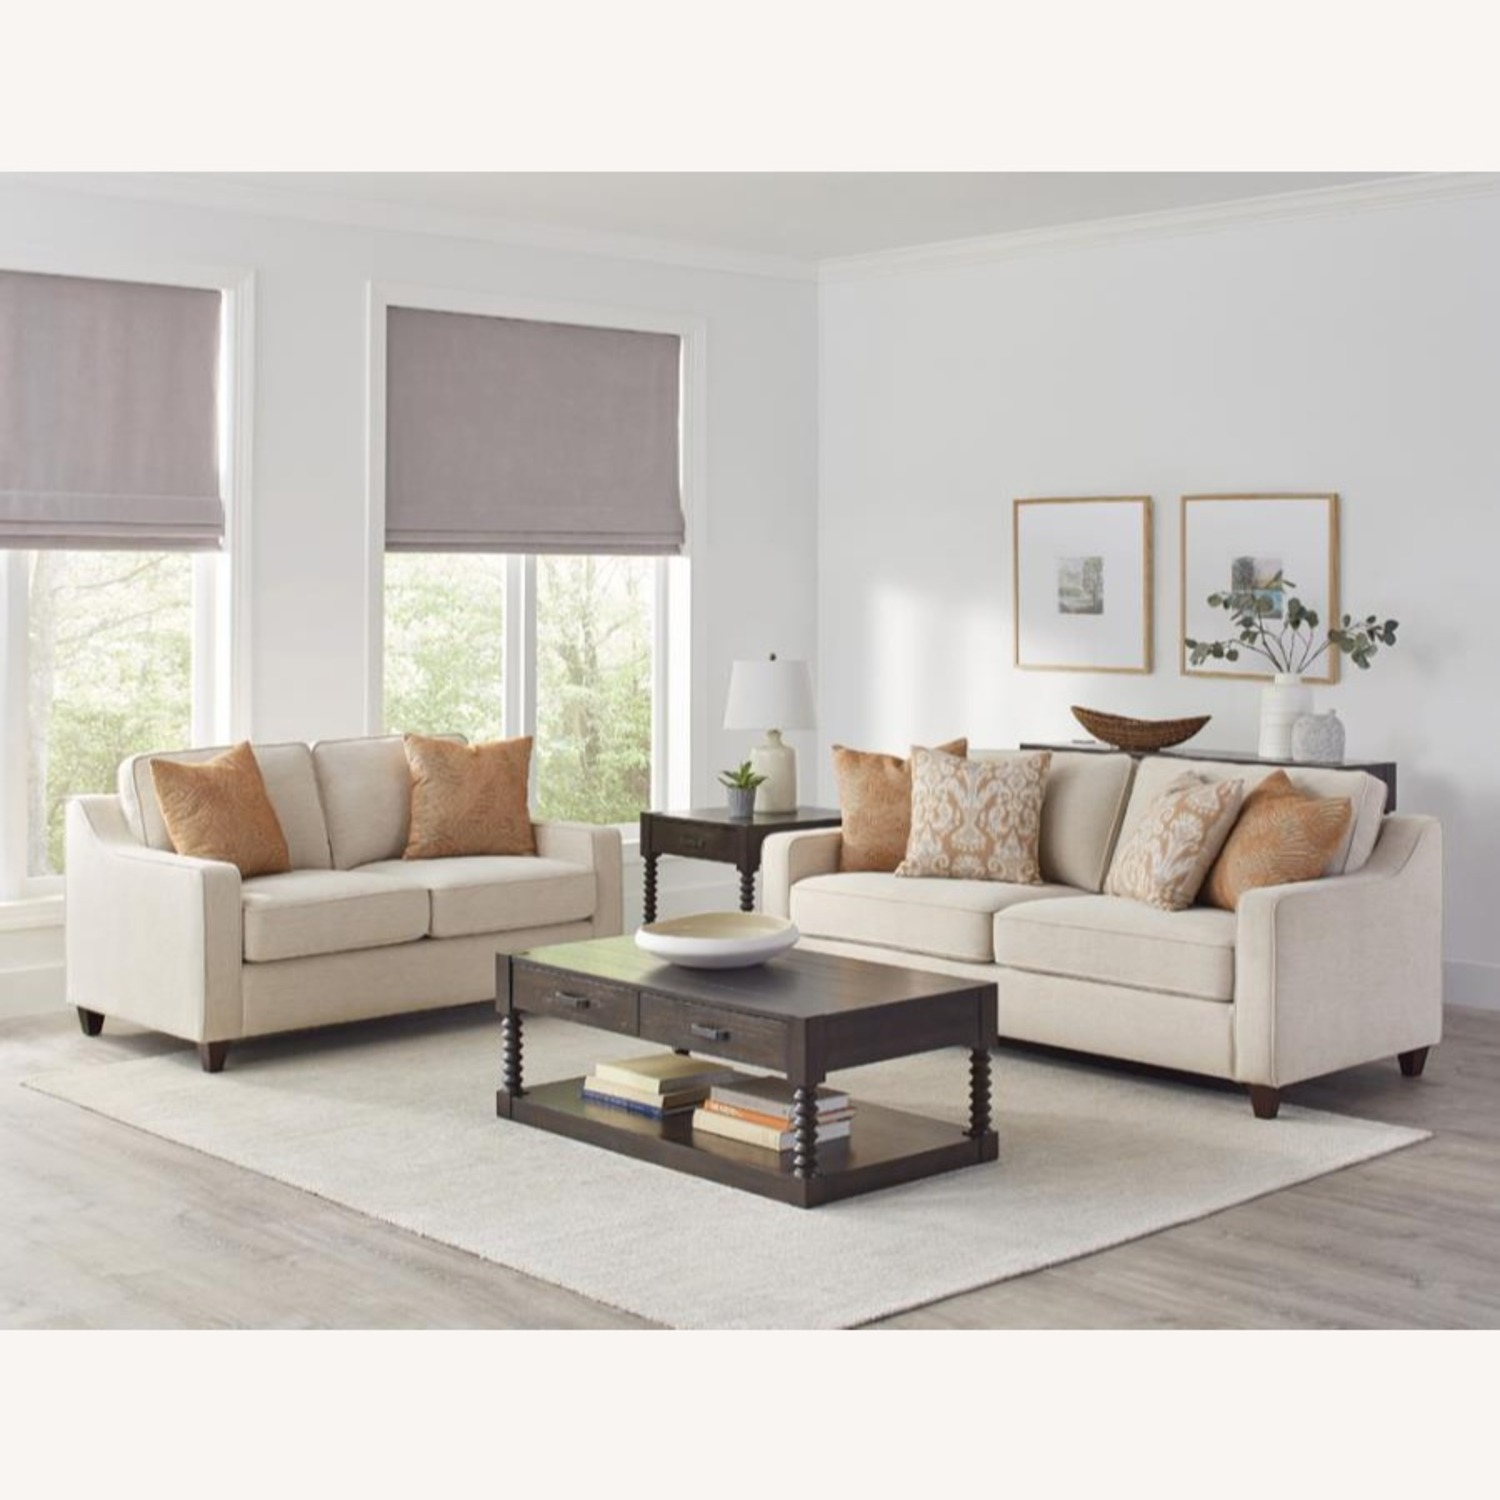 Sofa In Textured Beige Woven Chenille Finish - image-2